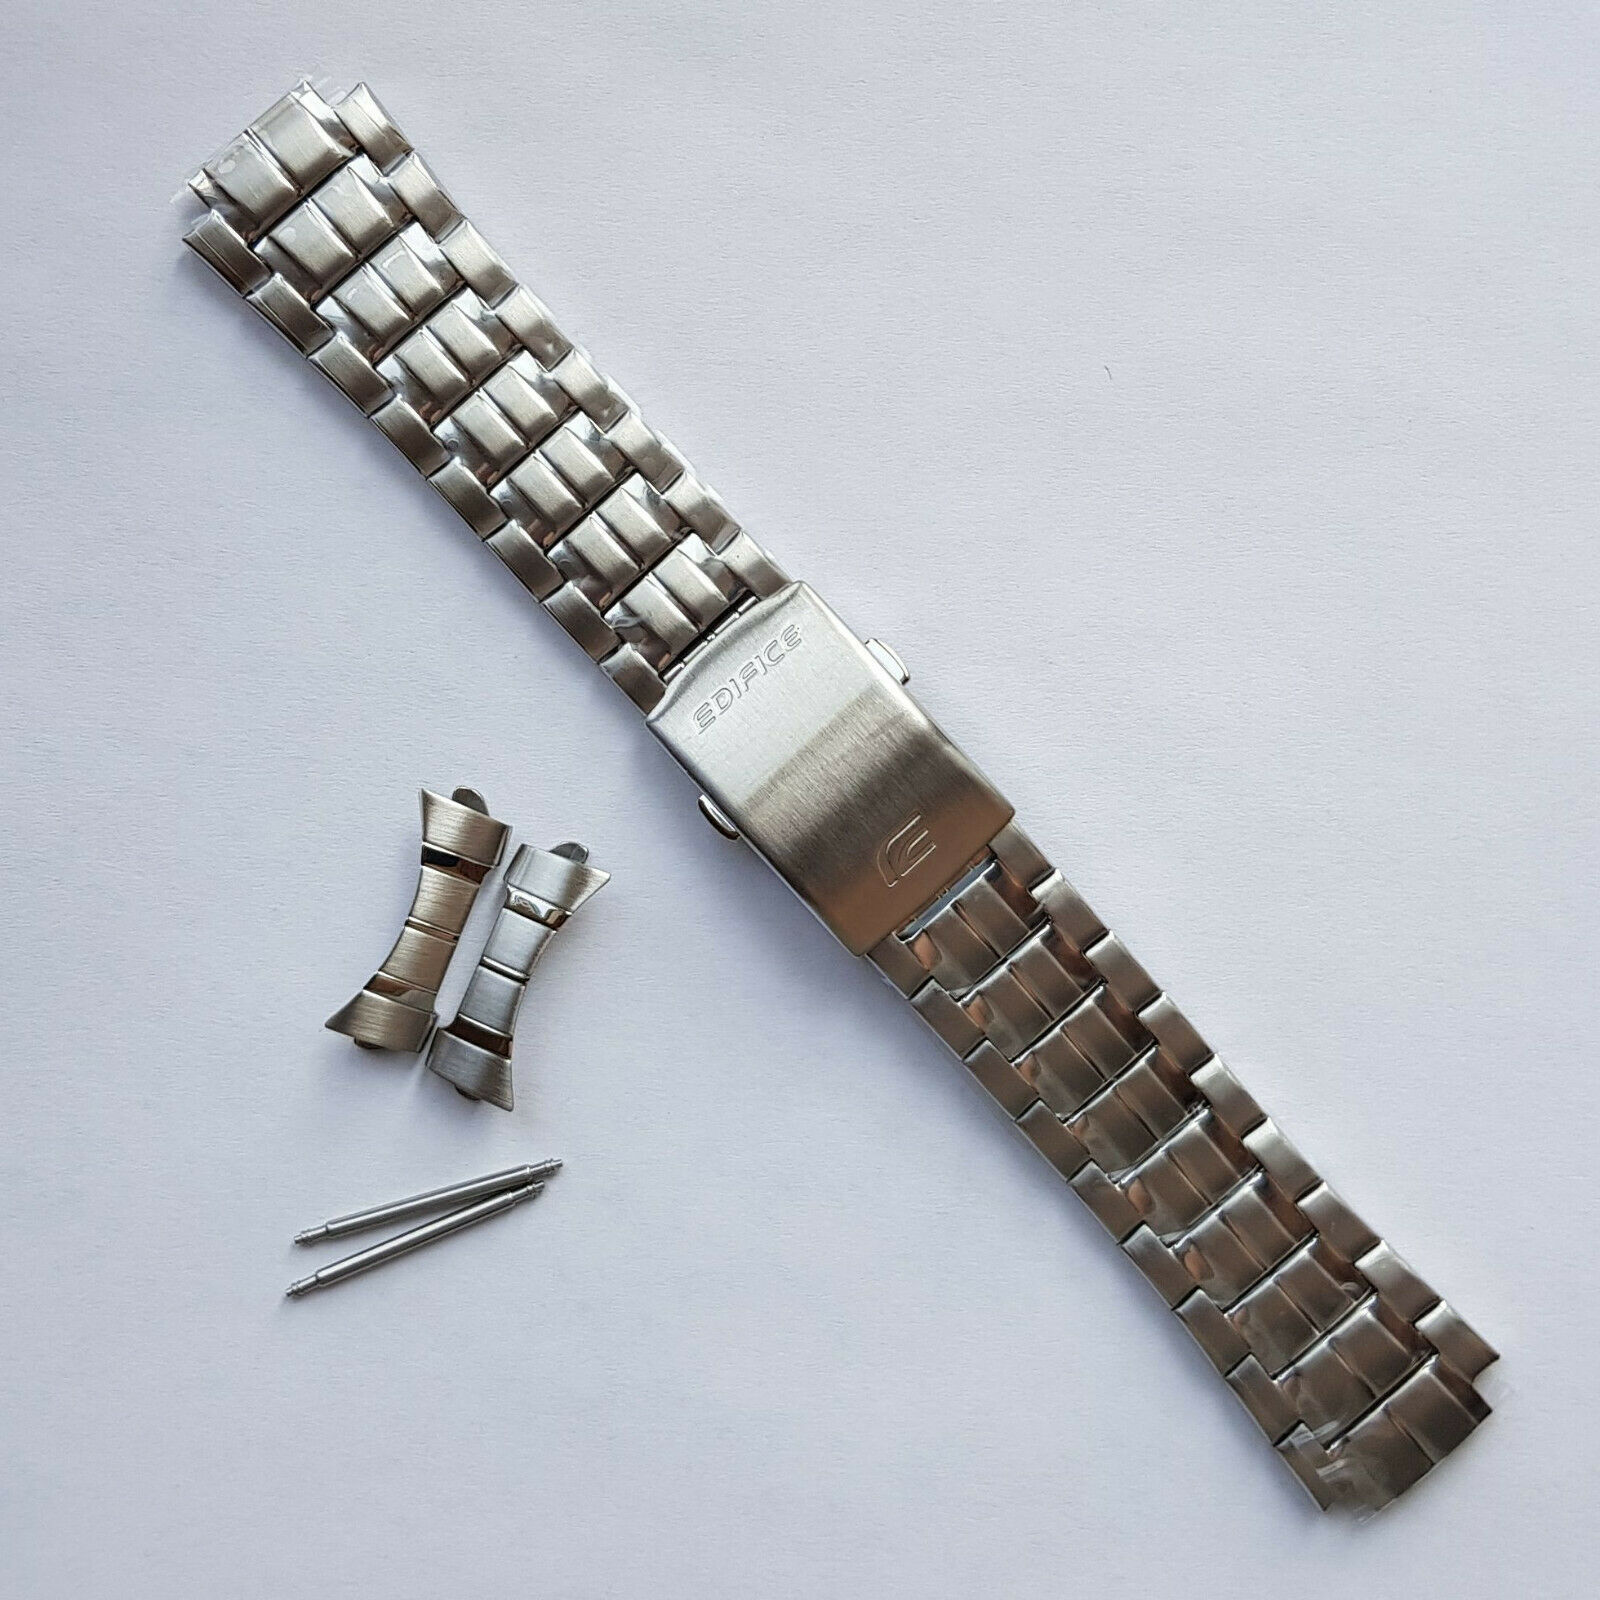 Primary image for Genuine Replacement Watch Band 24mm Stainless Steel Bracelet Casio EF-328D-1A